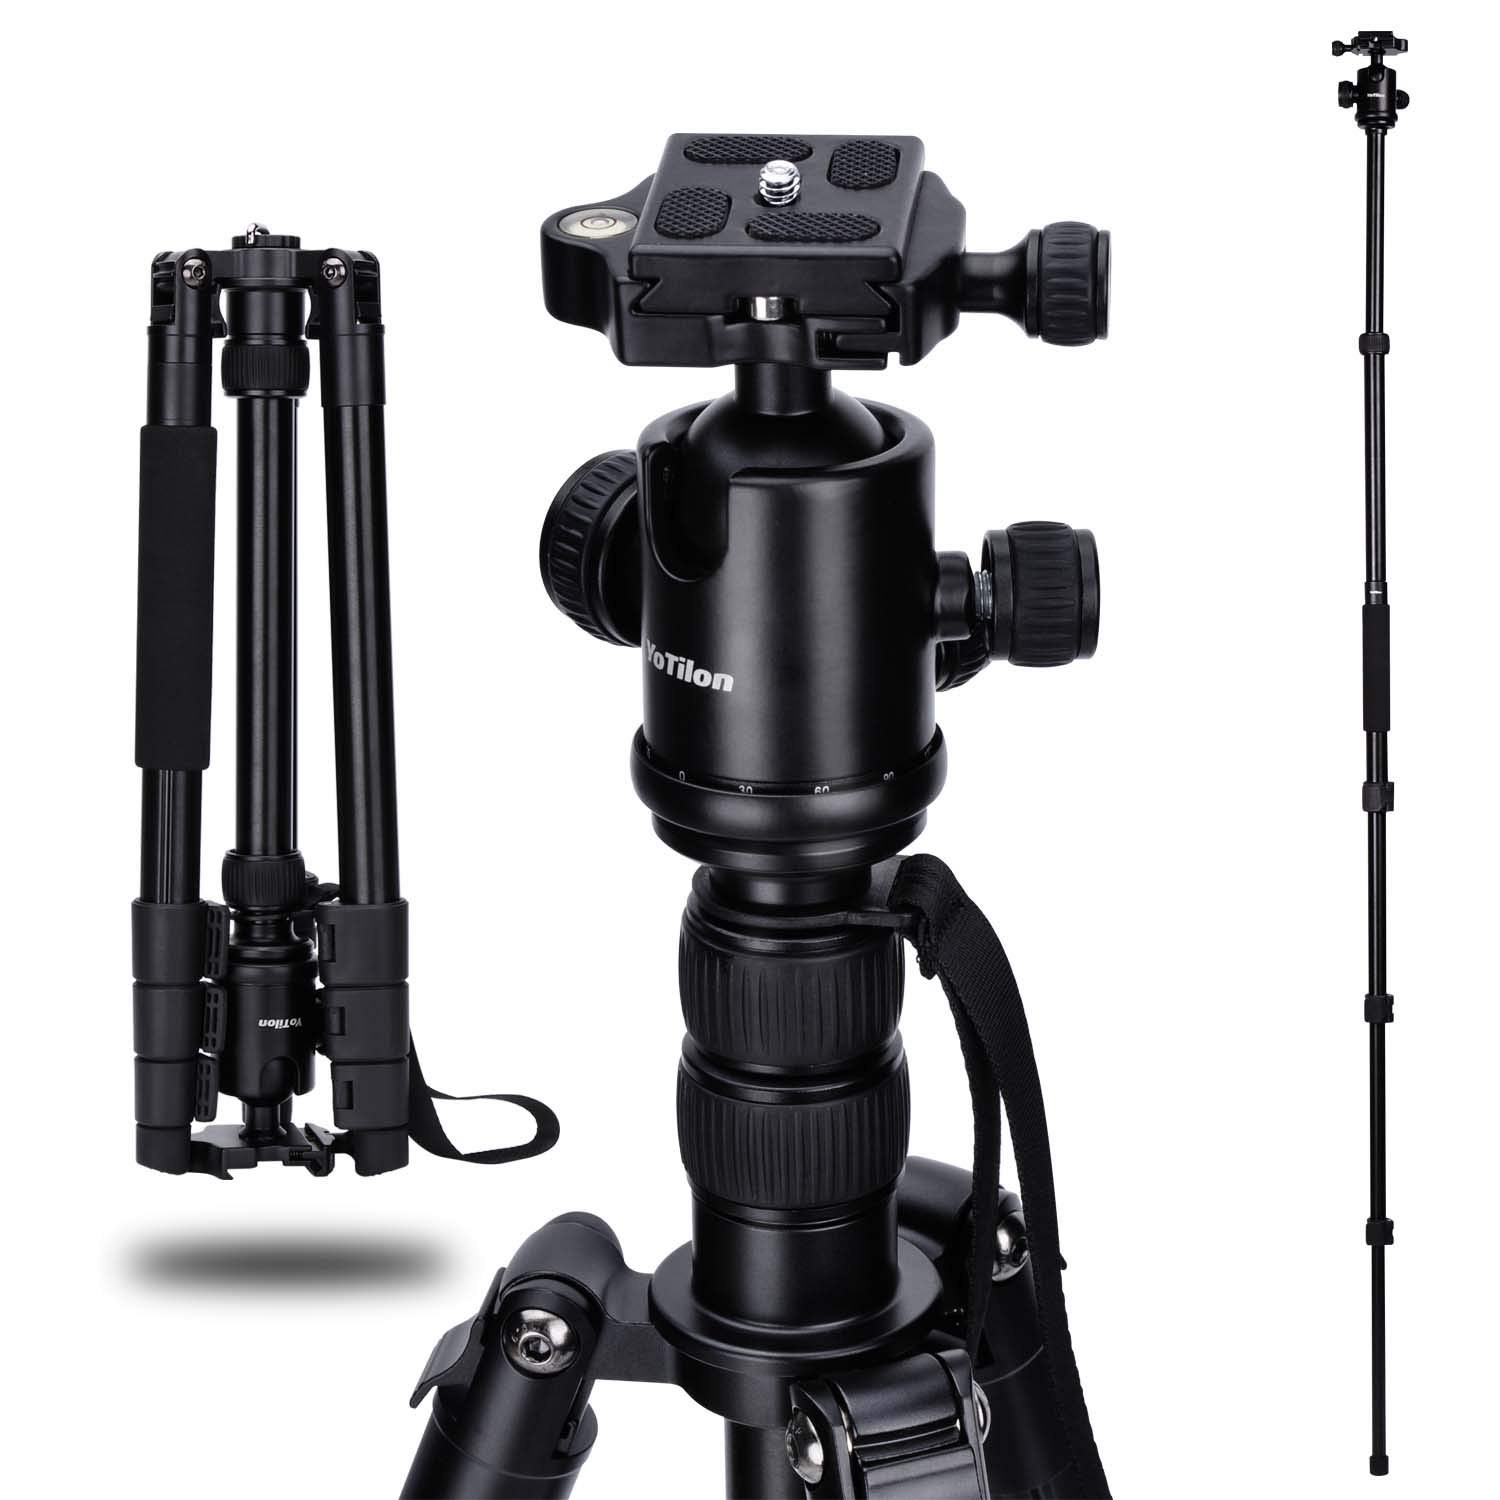 YoTilon Tripod for Camera, 64'' Aluminum Camera Tripod Monopod 360 Degree Ball Head with 1/4 Screw Fast Quick Release Plates for Canon Nikon Sony Samsung Olympus Panasonic & Pentax Travel Work